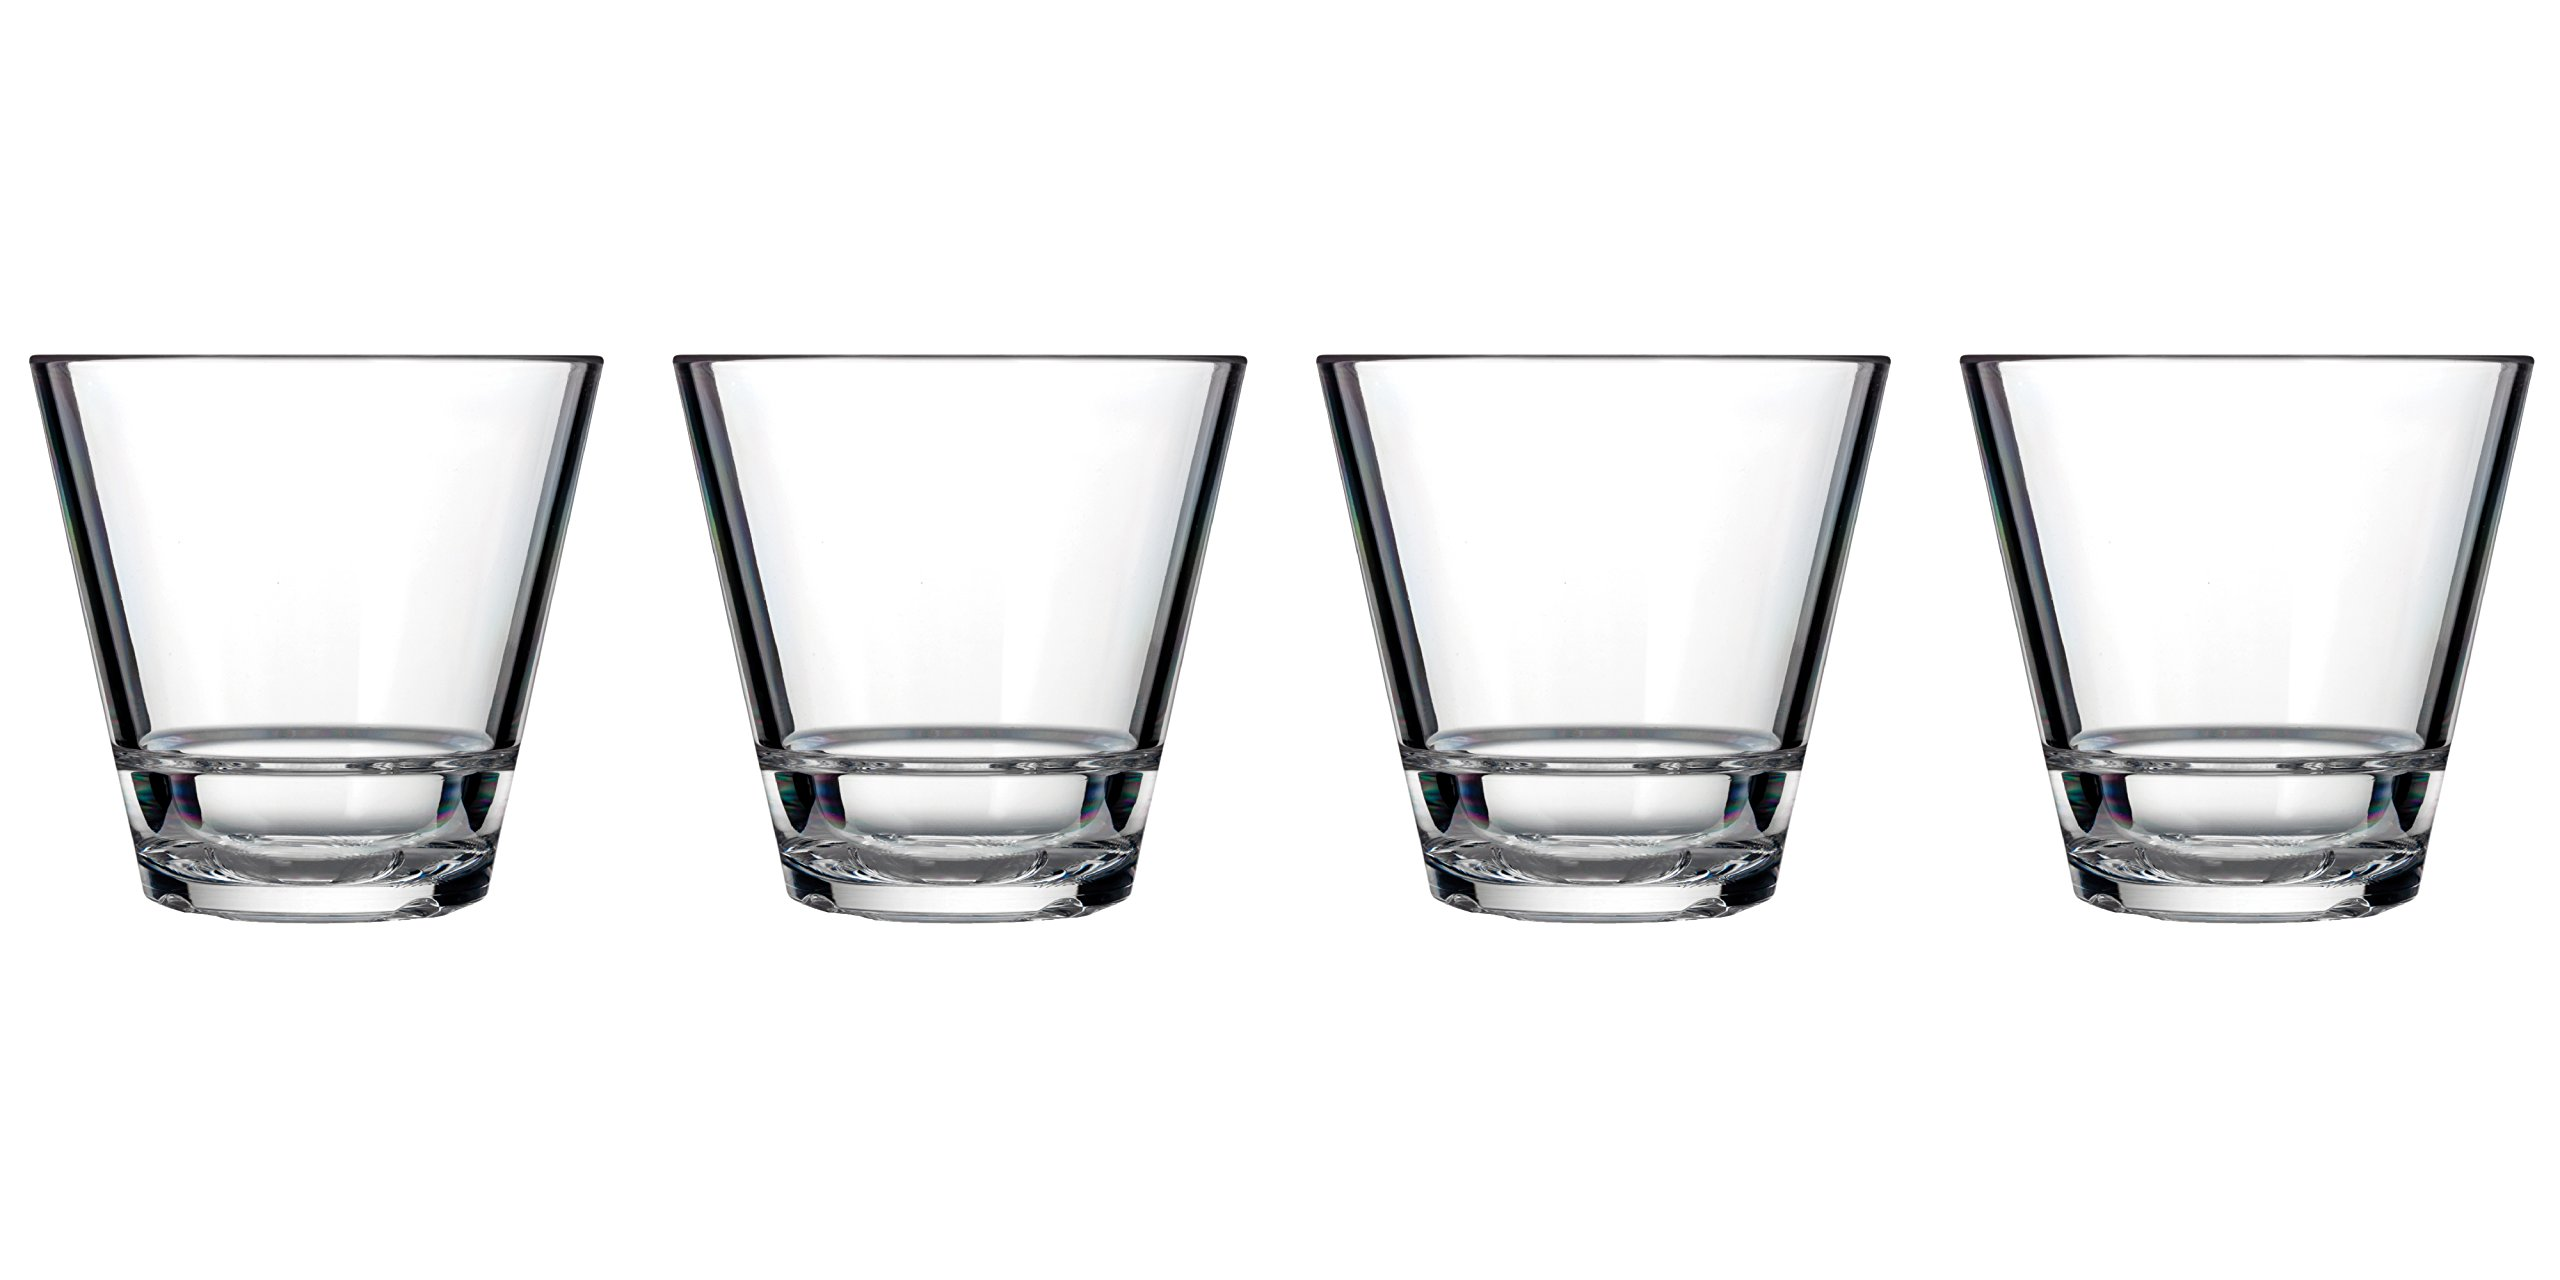 Drinique CAL-RK-CLR-4 Caliber Rocks Unbreakable Tritan Whiskey Glasses, 9.5 oz (Set of 4), Clear